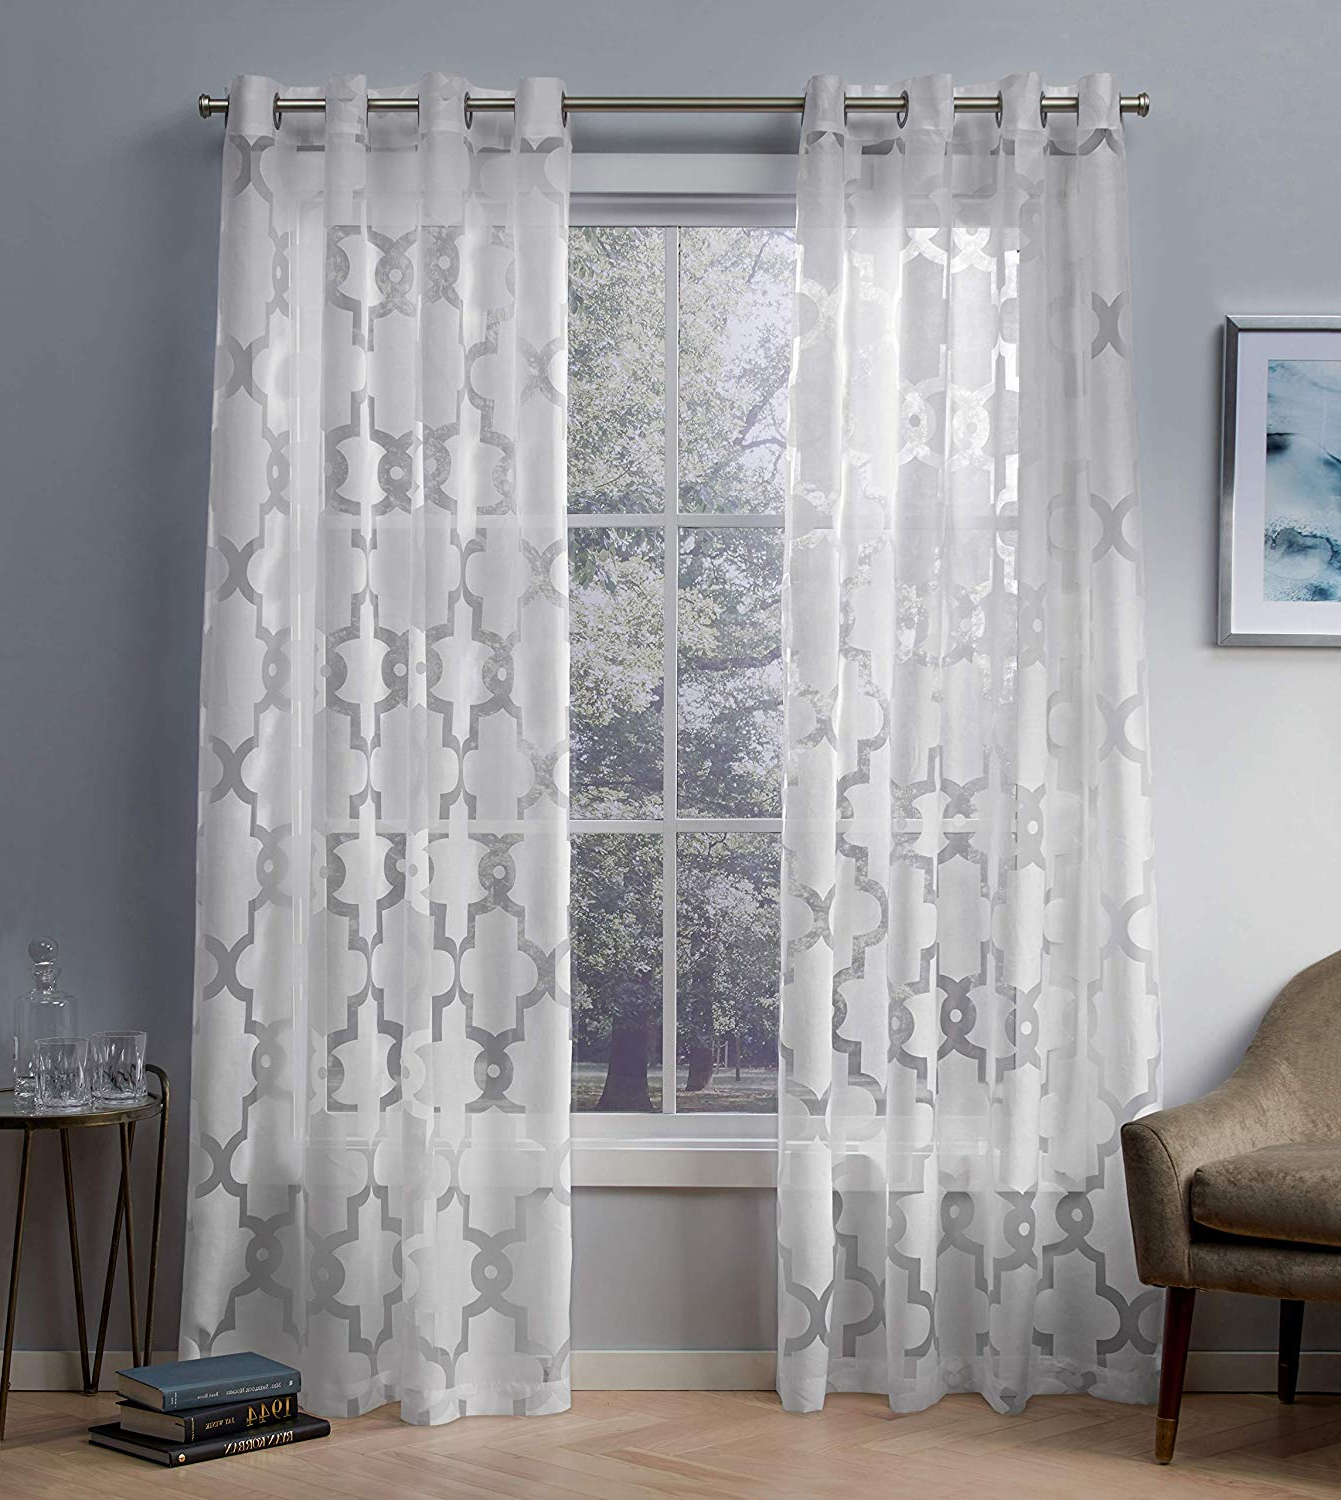 Wilshire Burnout Grommet Top Curtain Panel Pairs With Regard To Most Current Exclusive Home Curtains Essex Geometric Sheer Burnout Window Curtain Panel Pair With Grommet Top, 52x84, Winter White, 2 Piece (View 16 of 20)